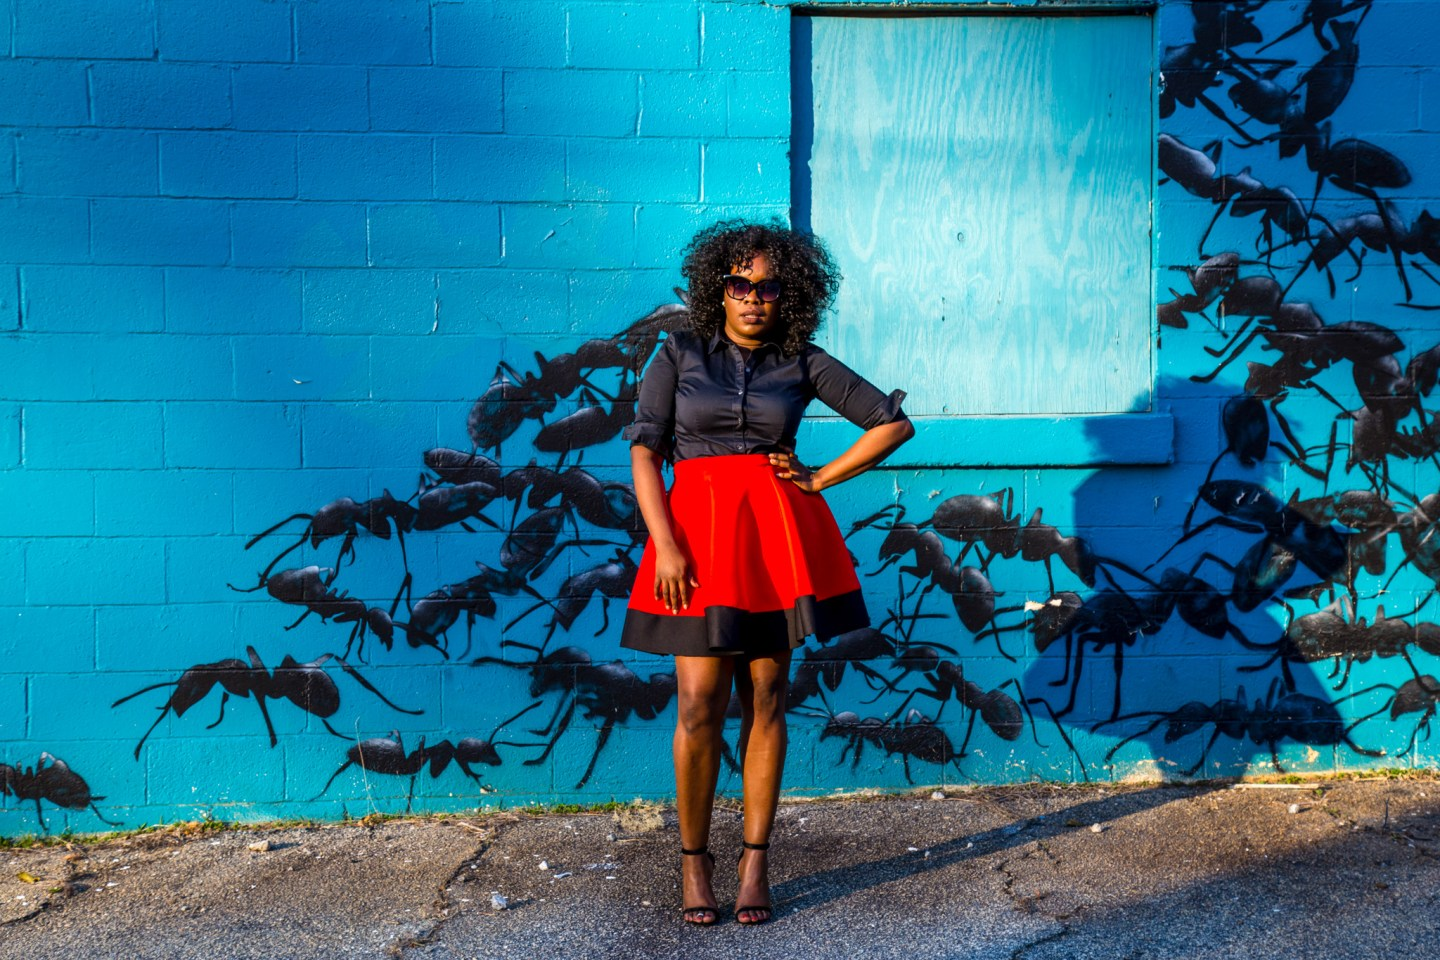 ChiChi wearing a red and black full circle skirt standing in front of an ant mural